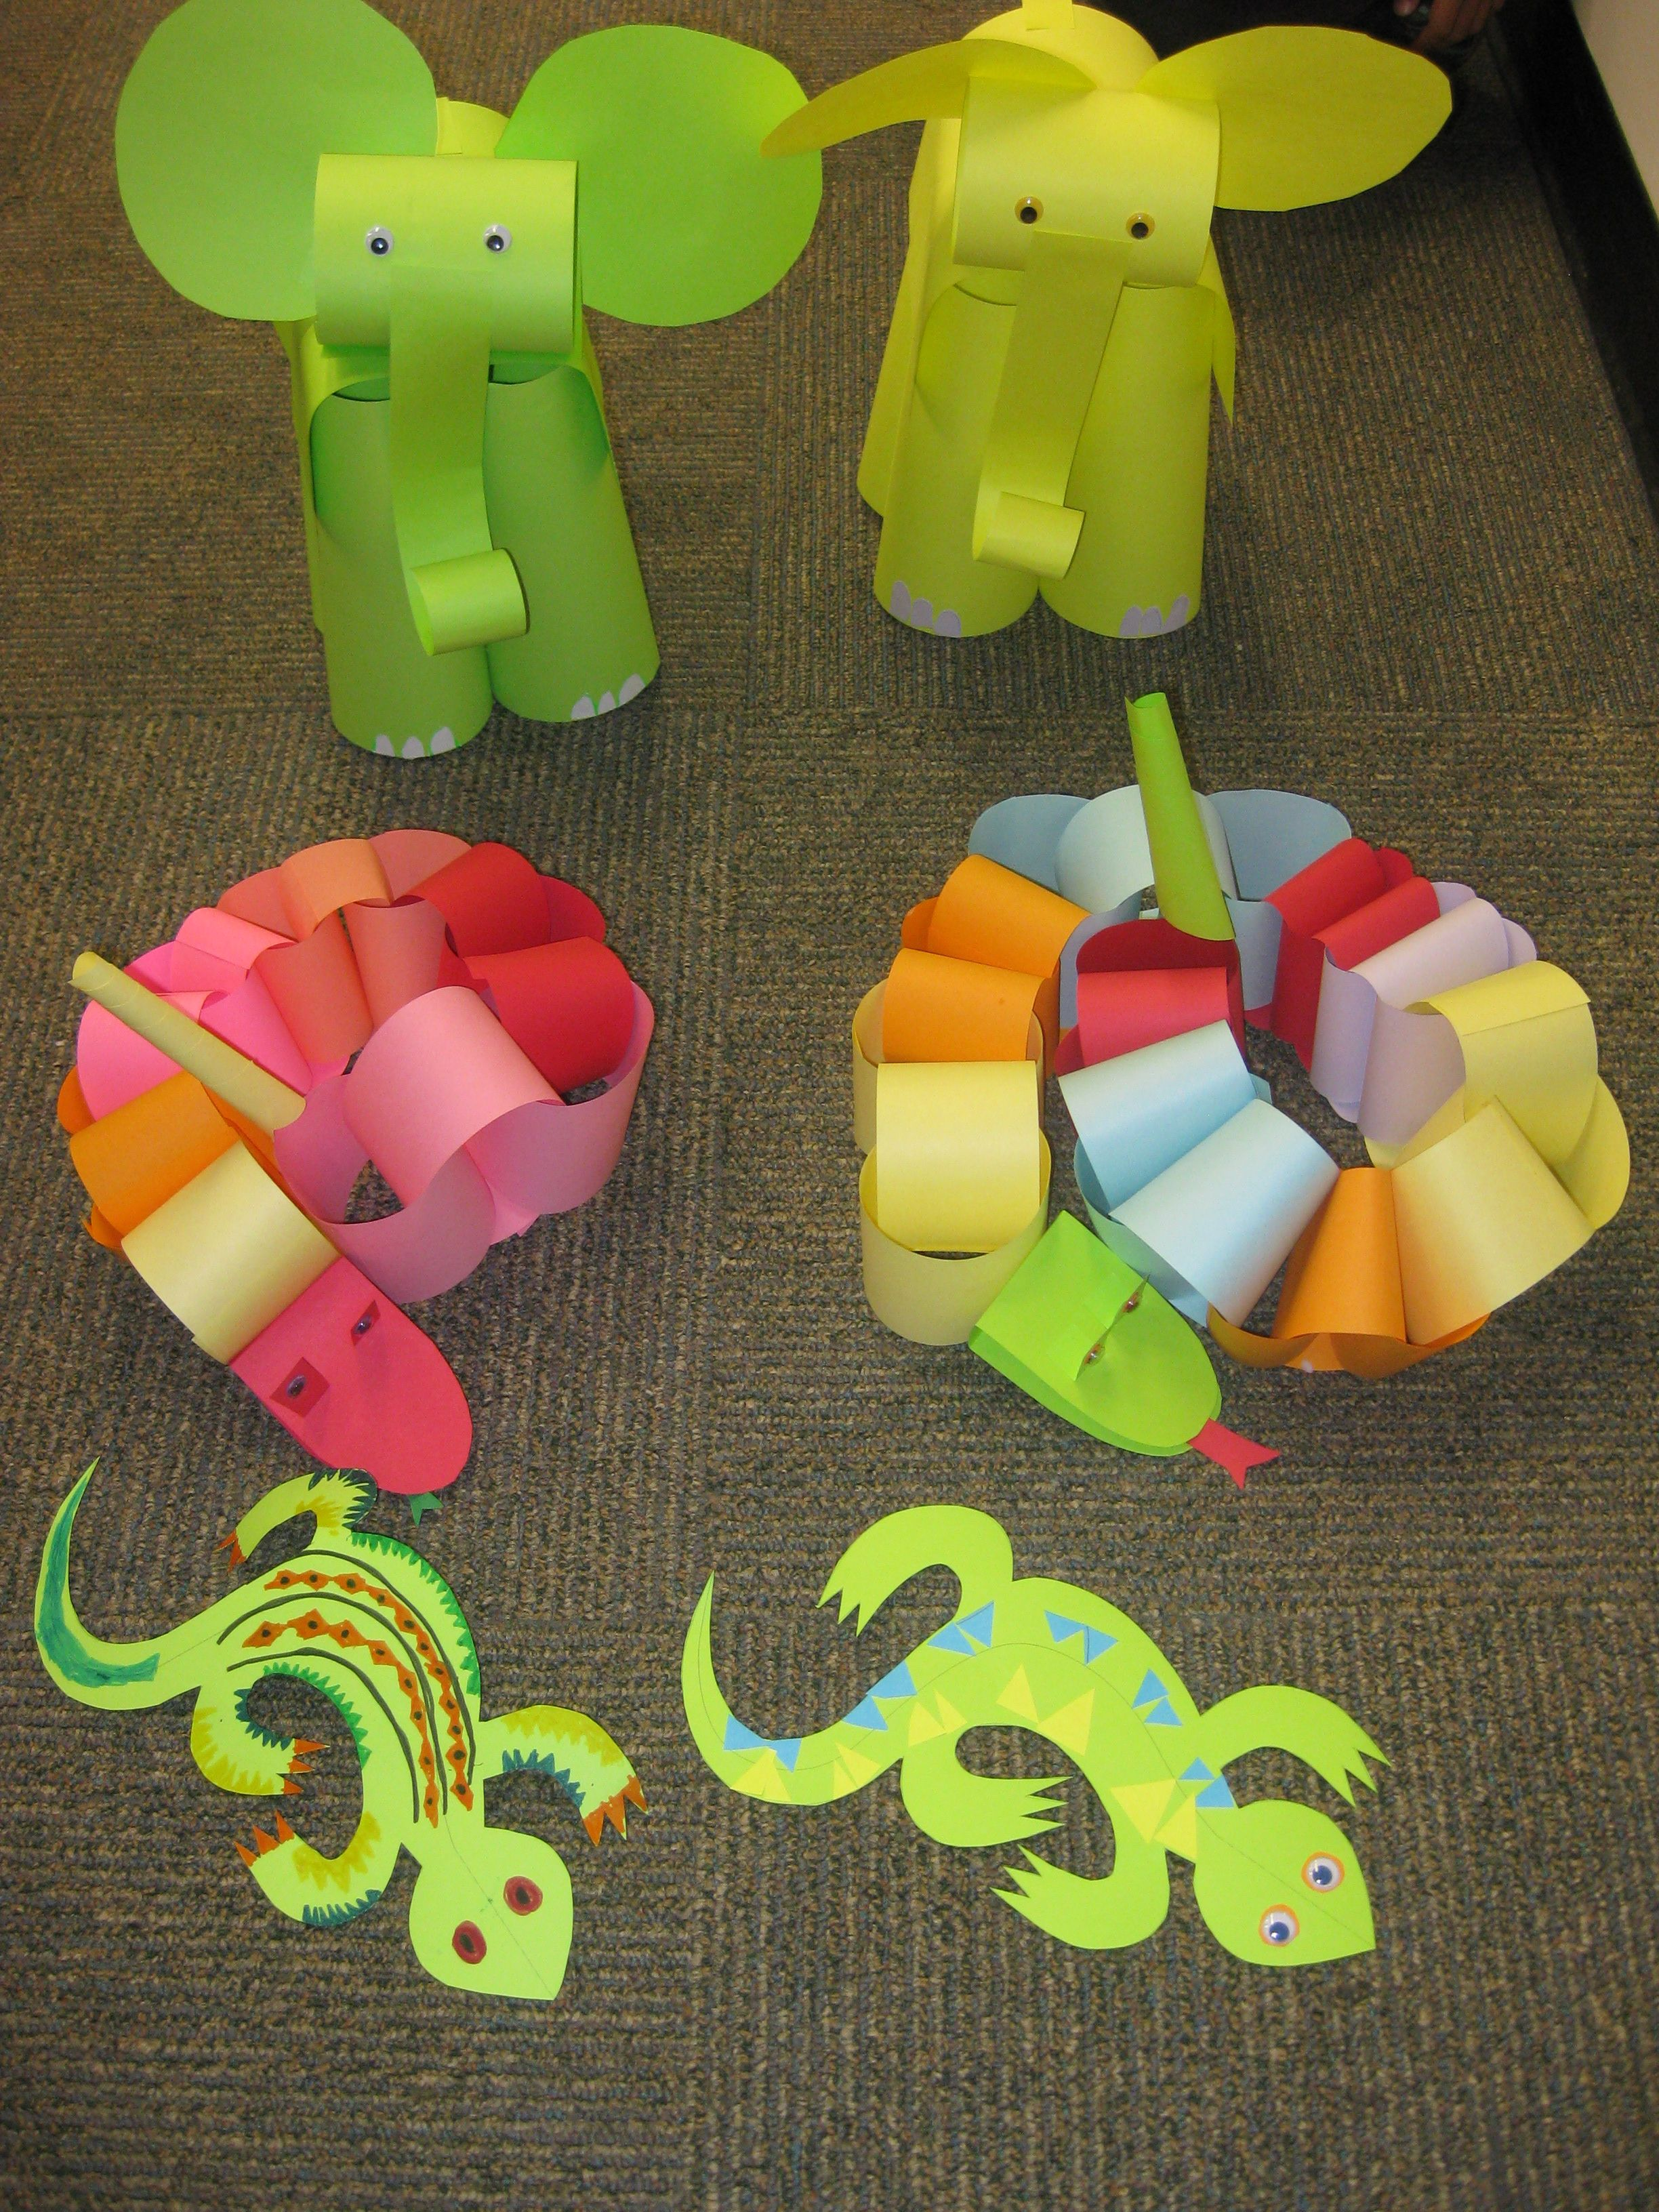 At Our August Paper Craft Program For Children We Escaped The Summer Heat By Plunging Into The